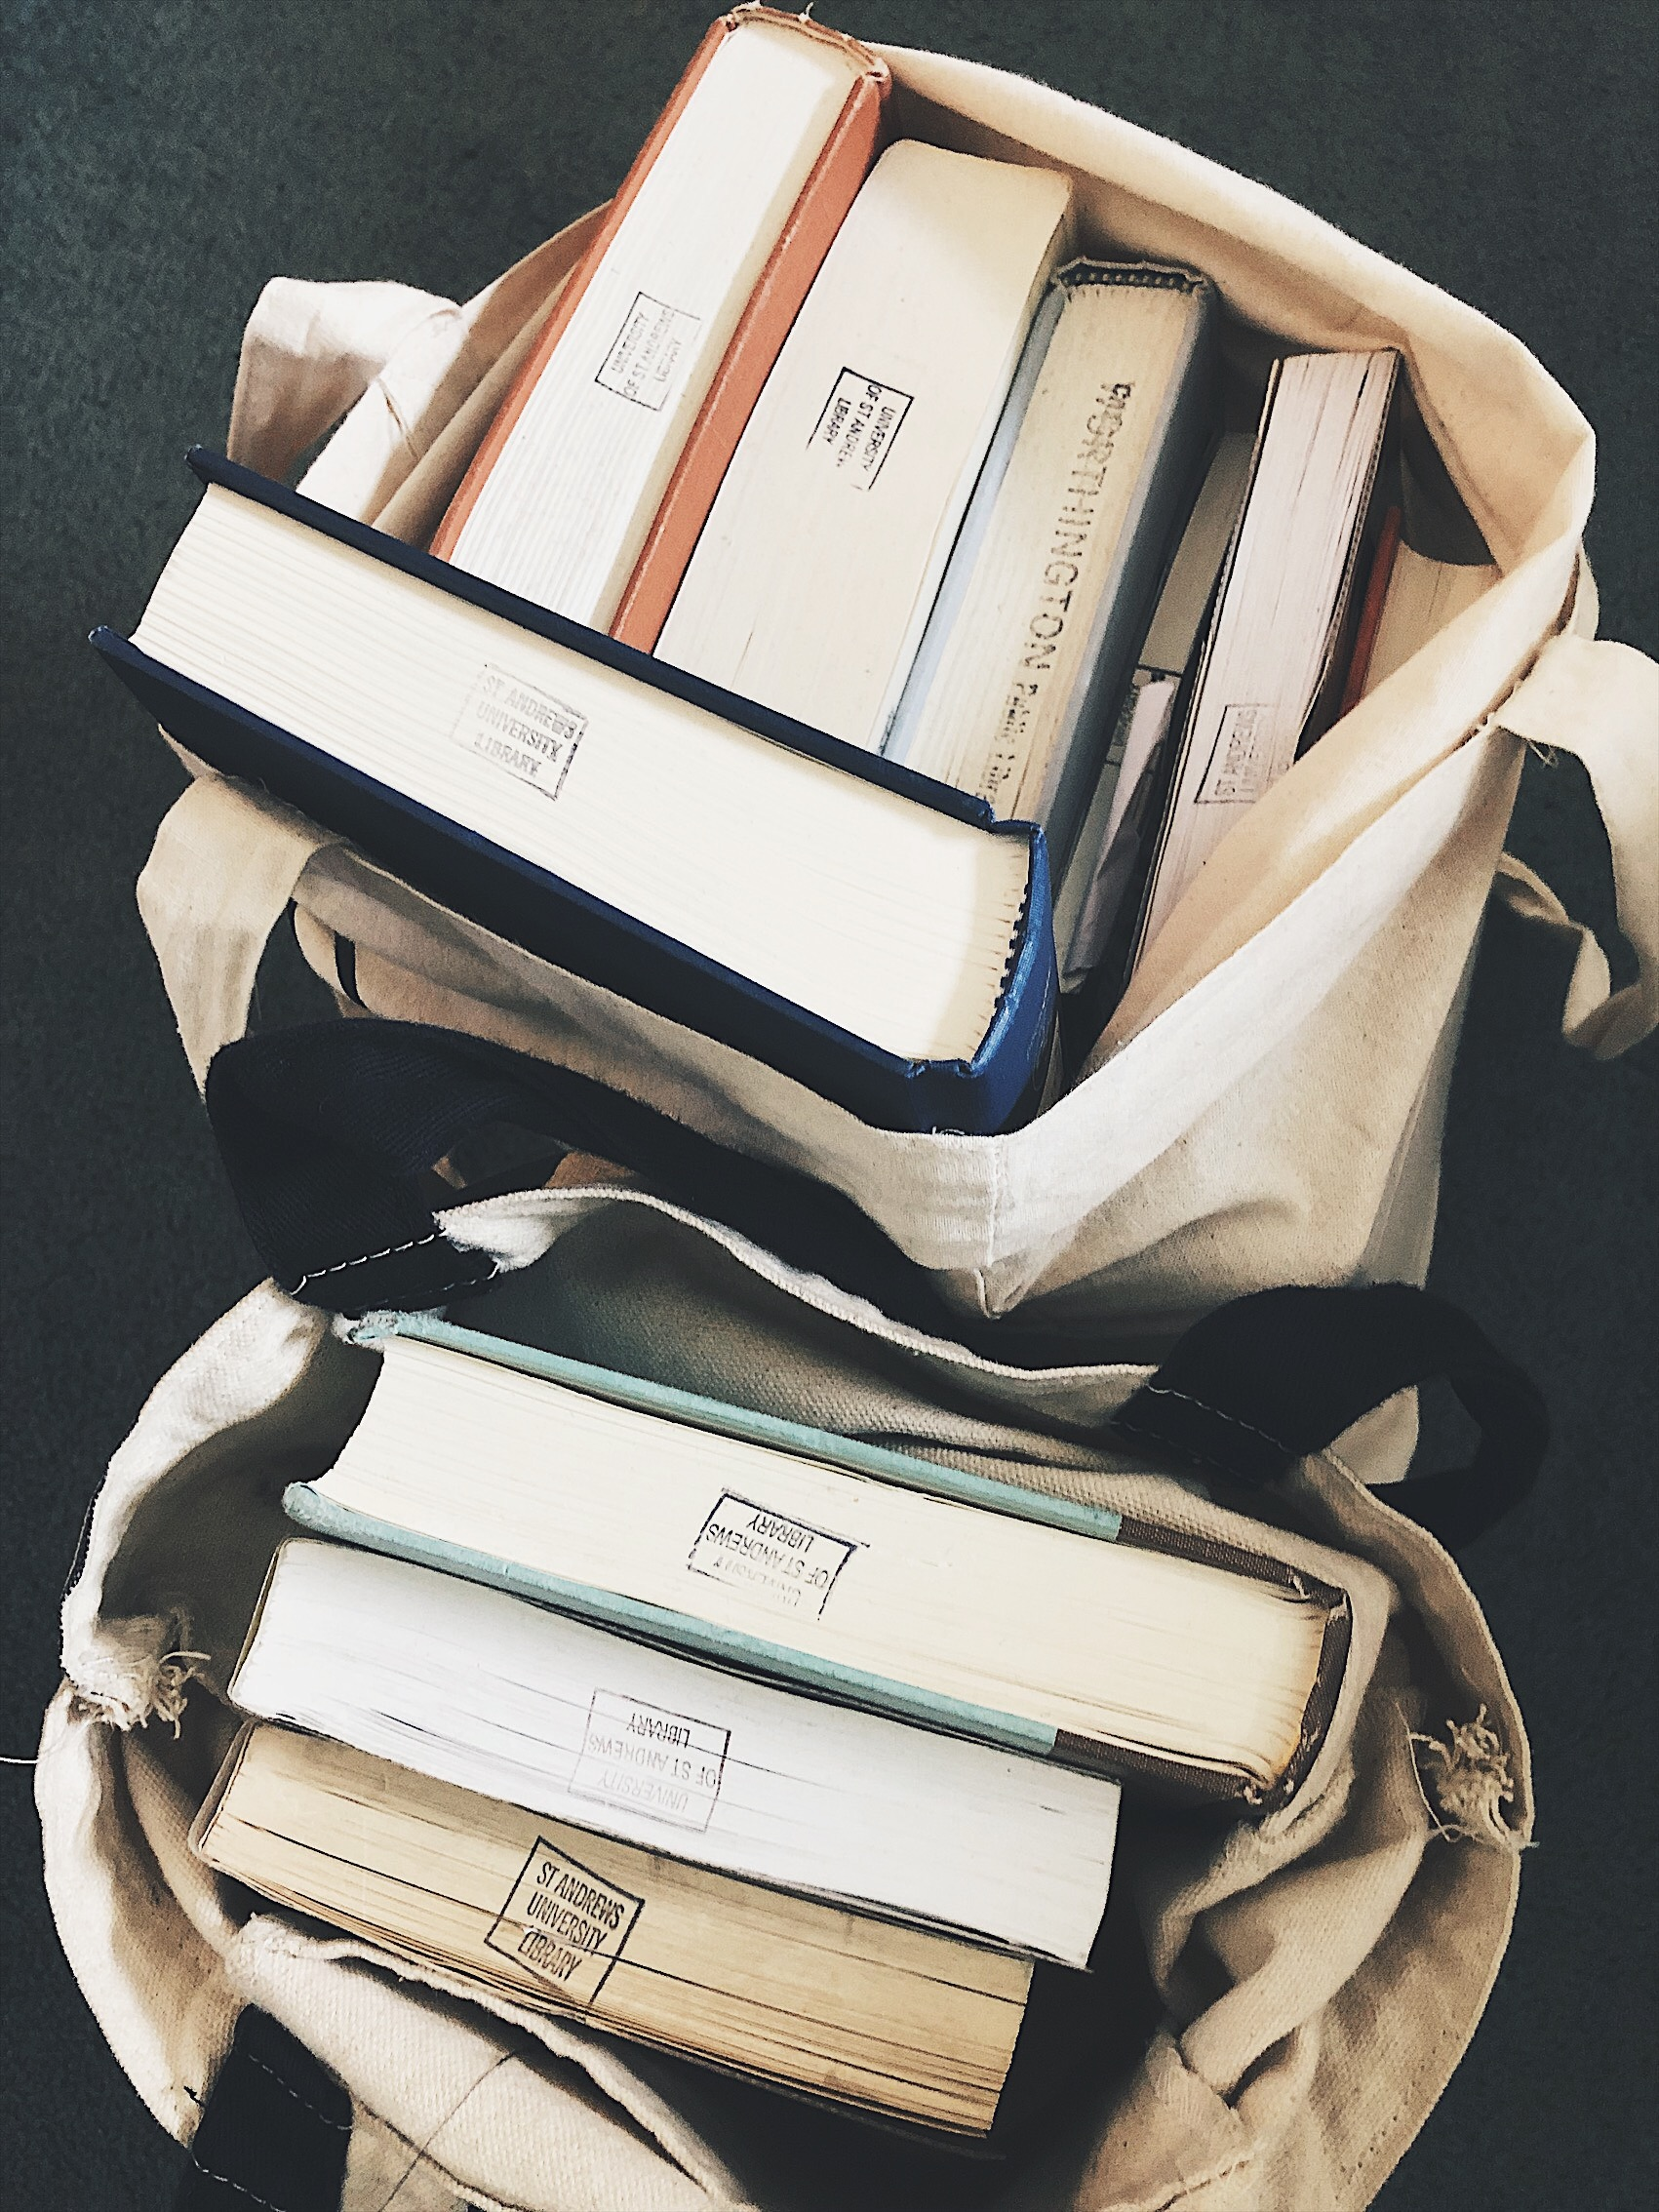 Jessica Armstrong Summer Reads 2019 The Attic on Eighth Book Bags.JPG